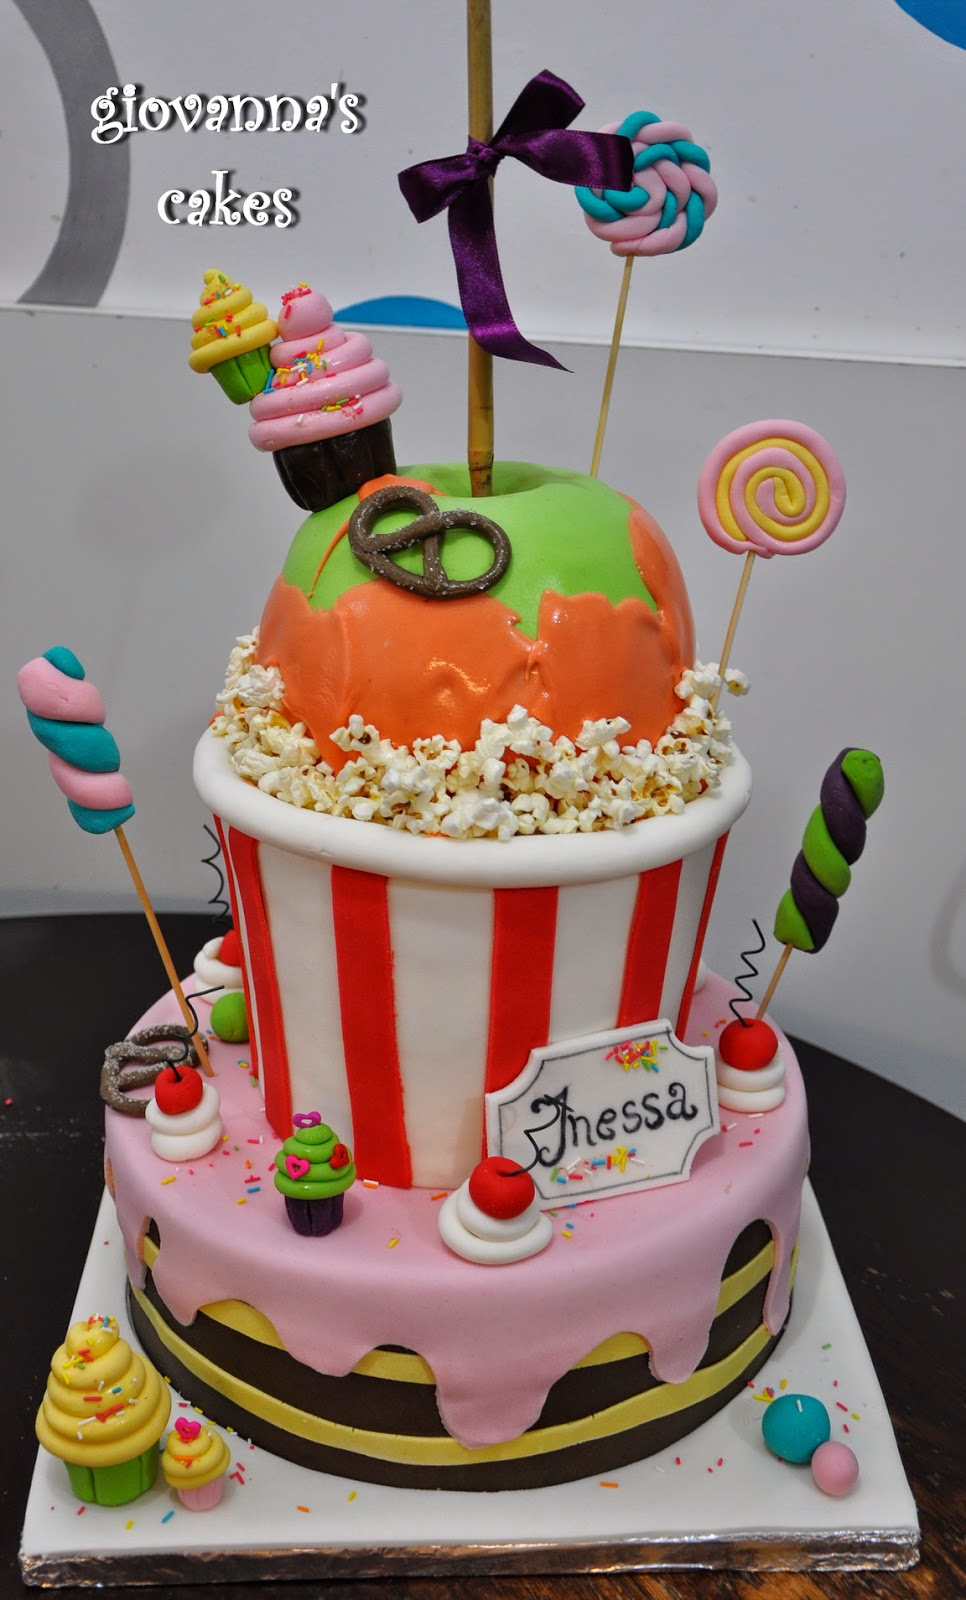 giovannas cakes Turning 15 birthday cake